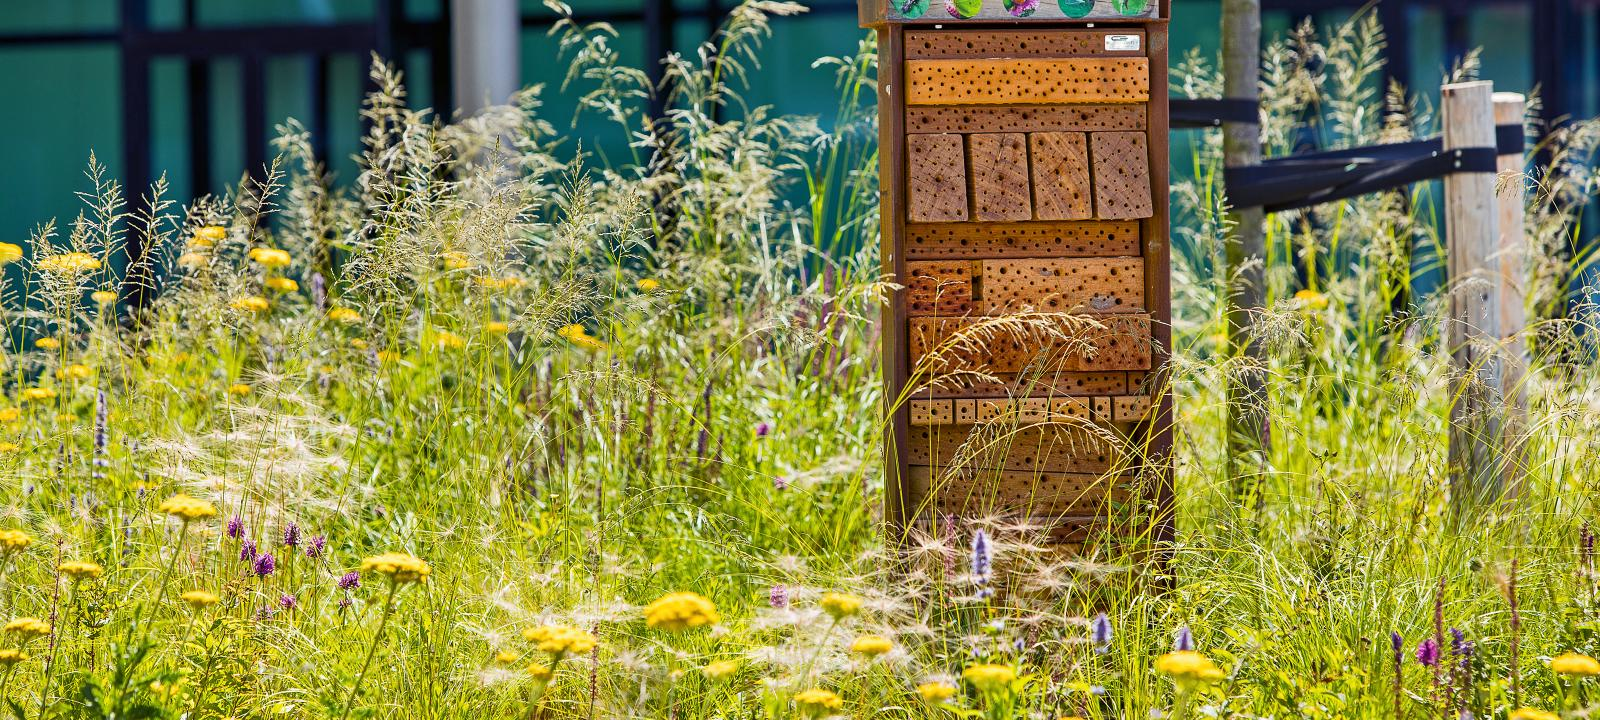 Meadow with nesting aid for insects.